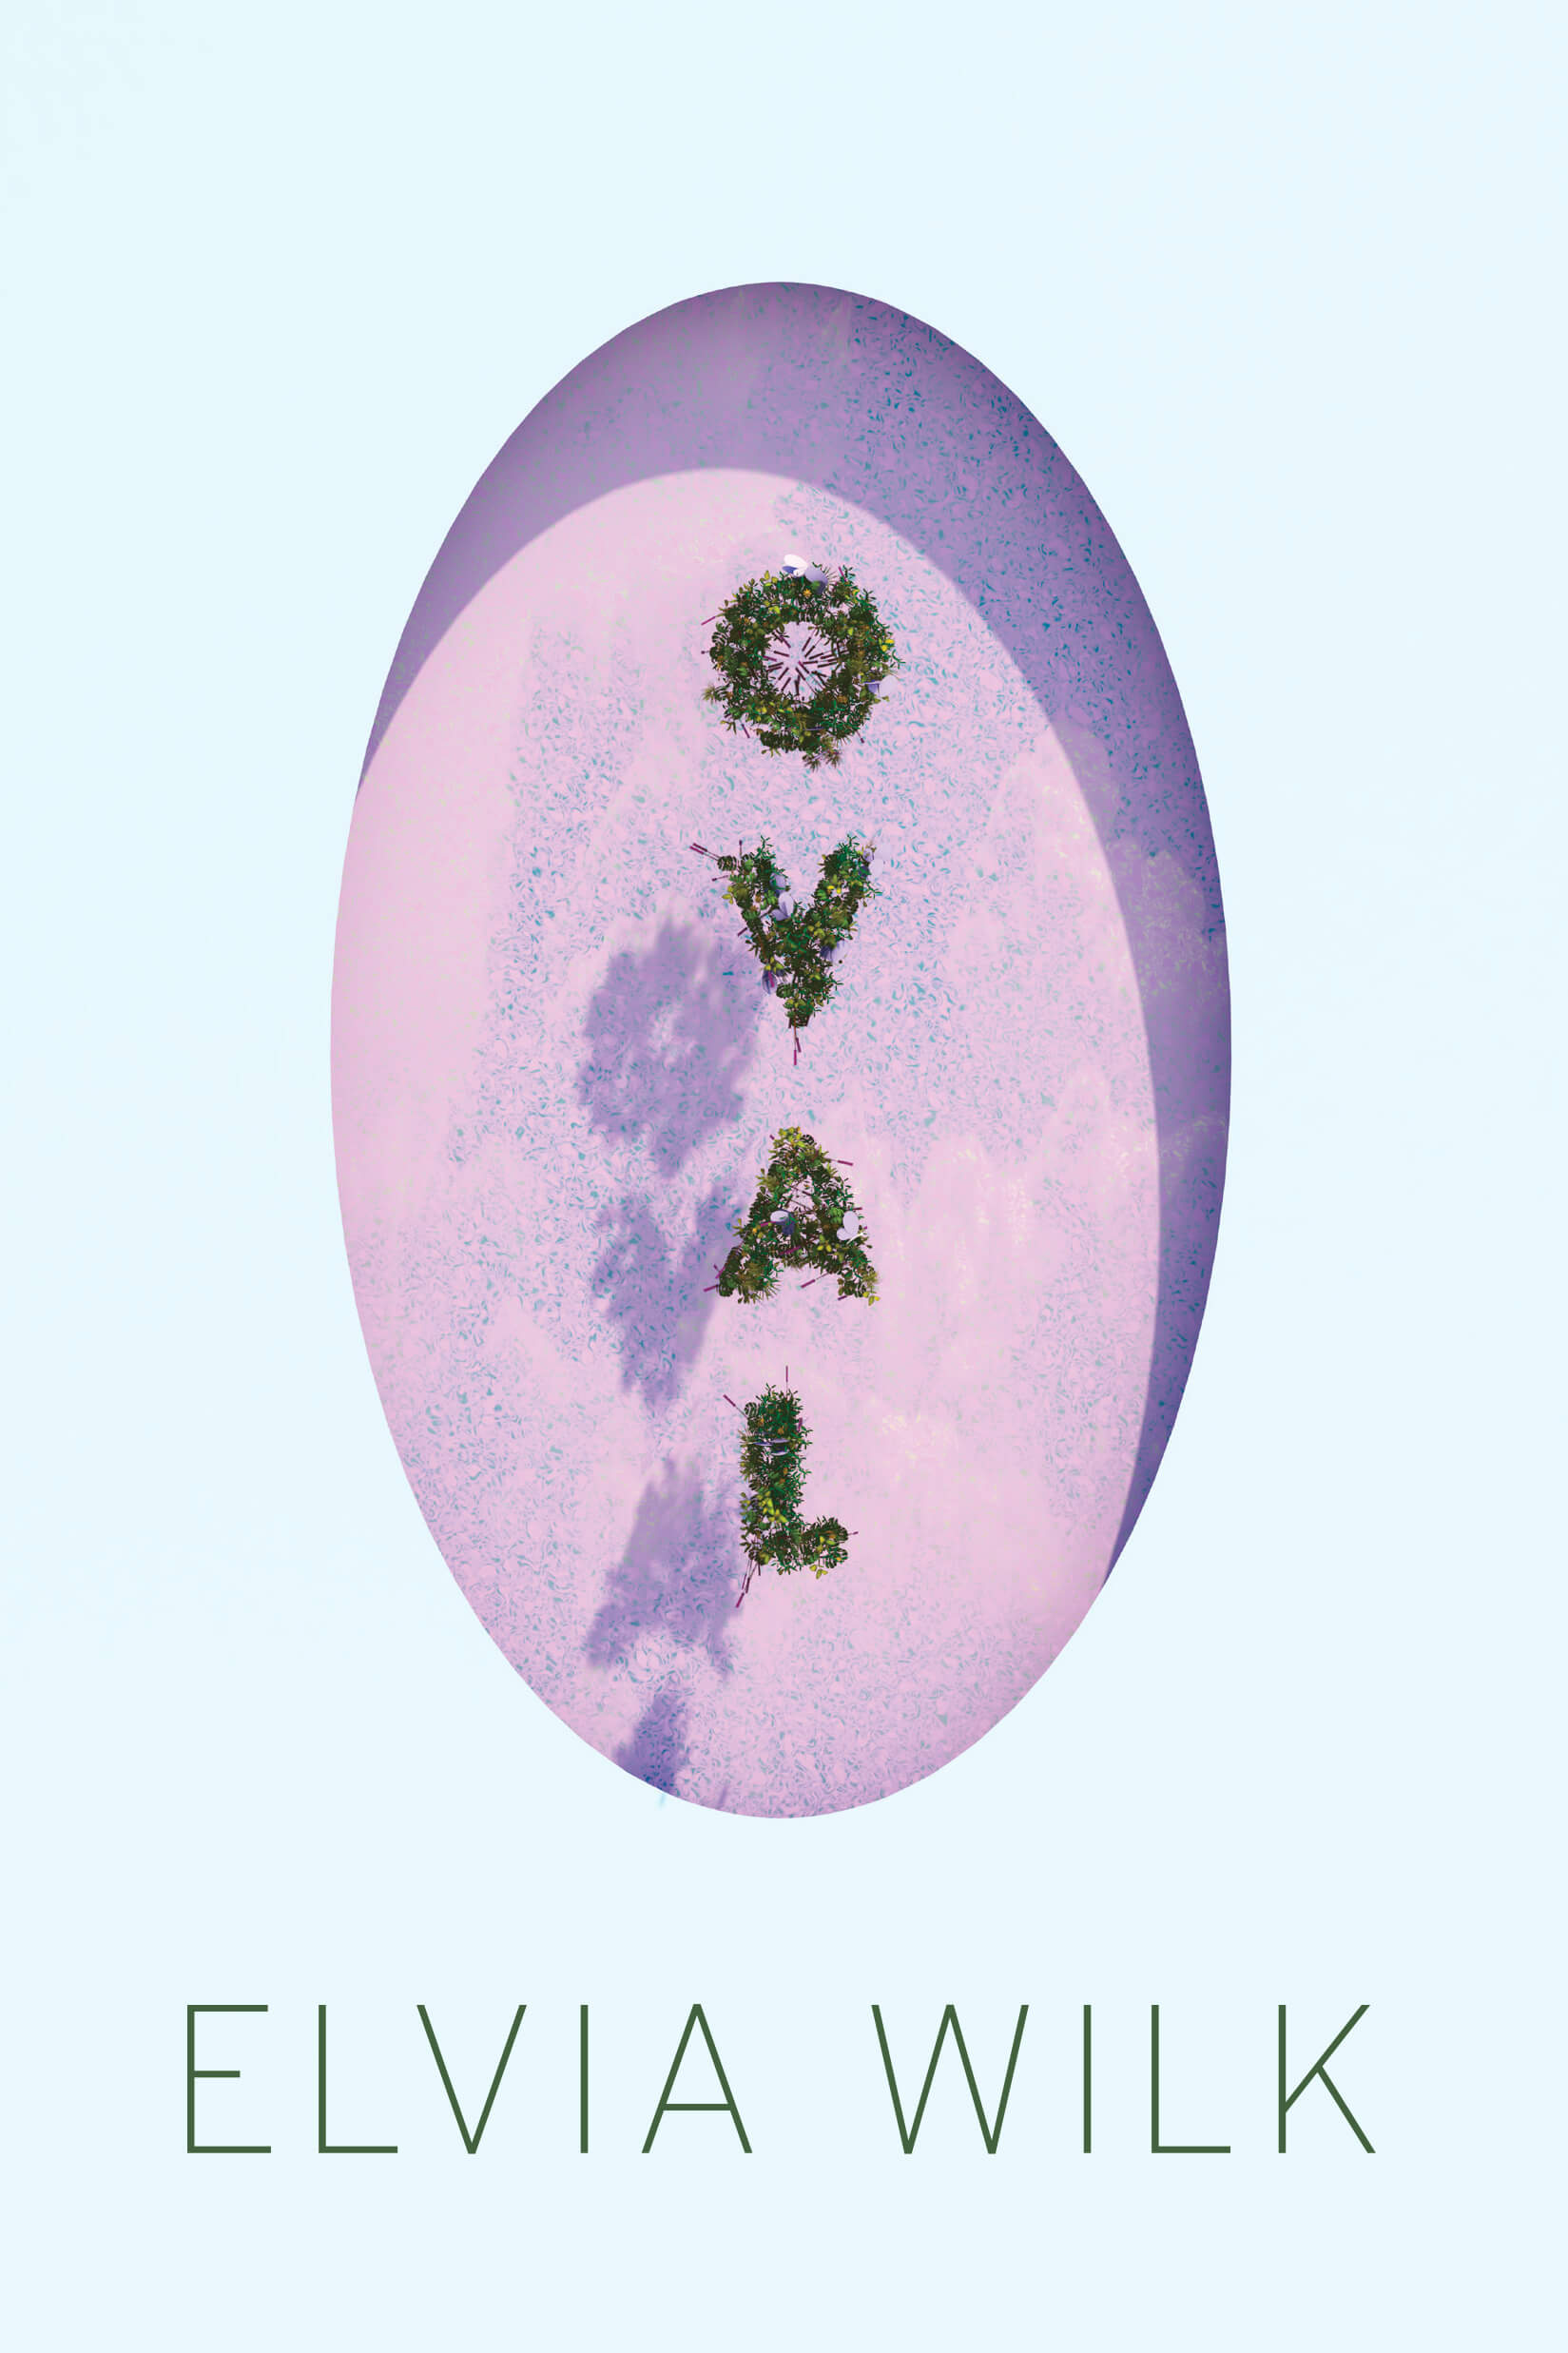 Oval by Elvia Wilk Alice Gregory at Swiss Institute